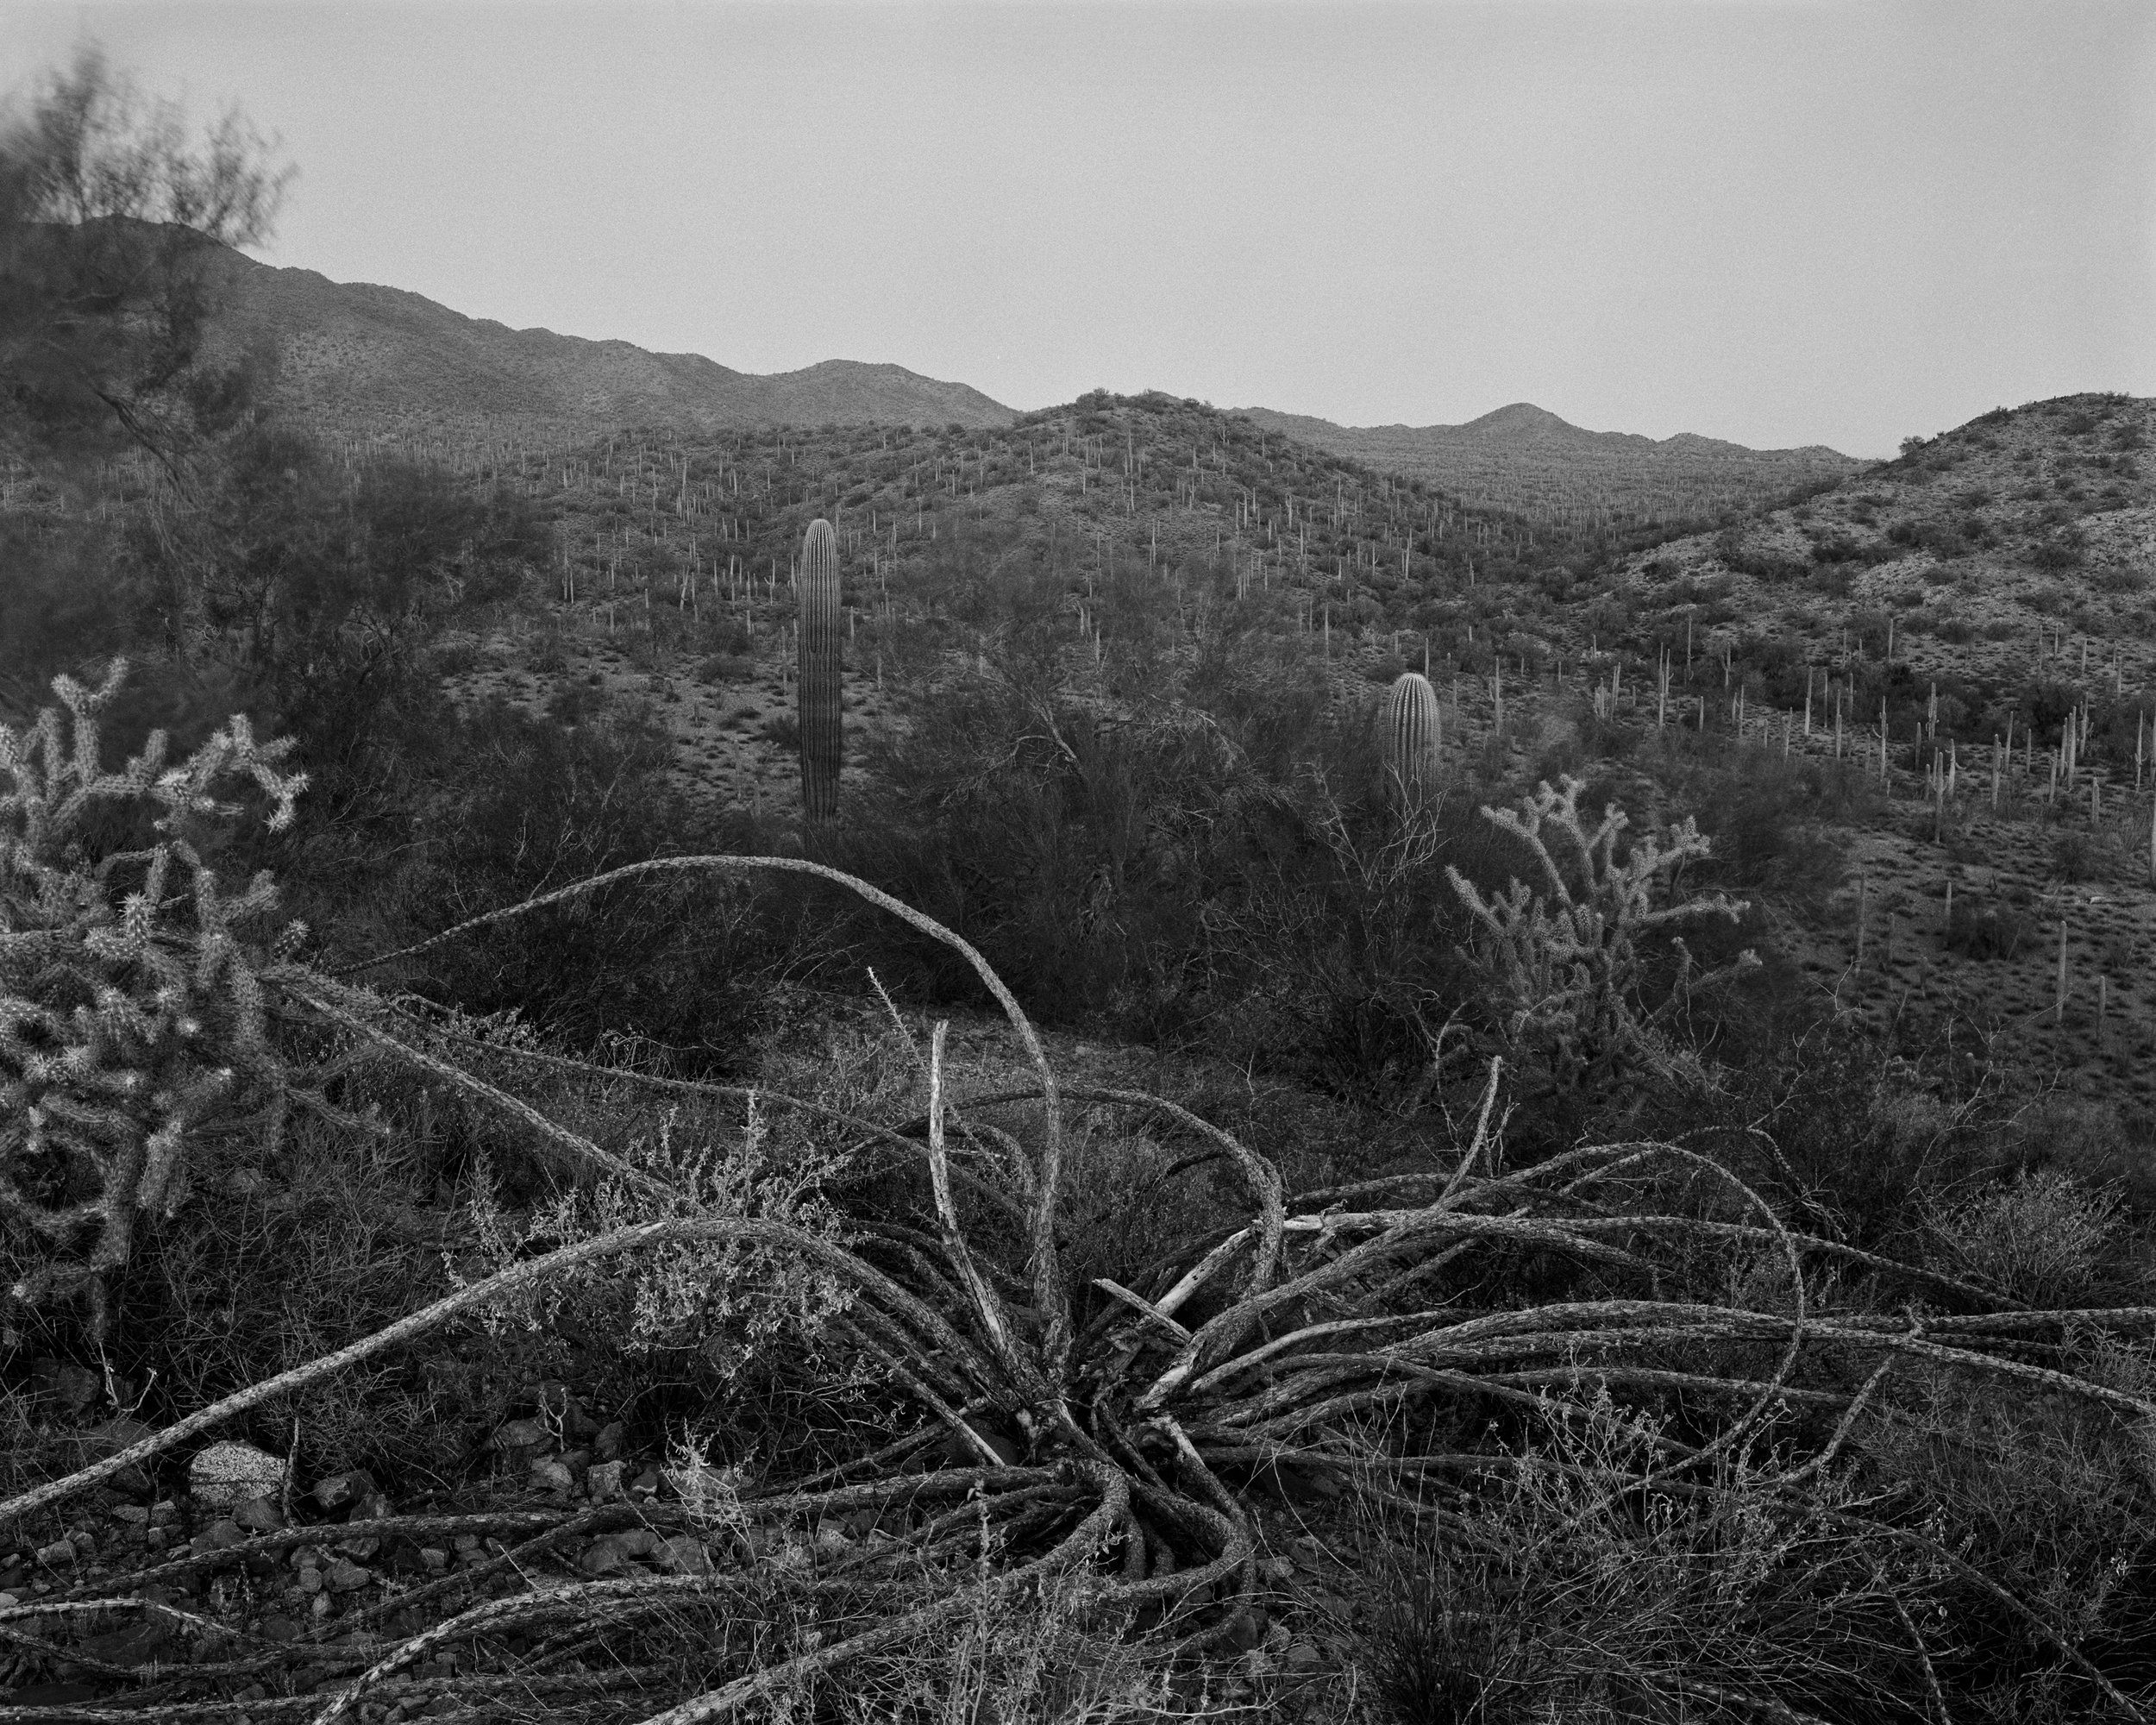 MICHAEL LUNDGREN  Dawn, 2002  Gelatin Silver Print  Available sizes 20 x 24 in, ed. 10 + 2AP 32 x 40 in, ed. 3 + 1AP